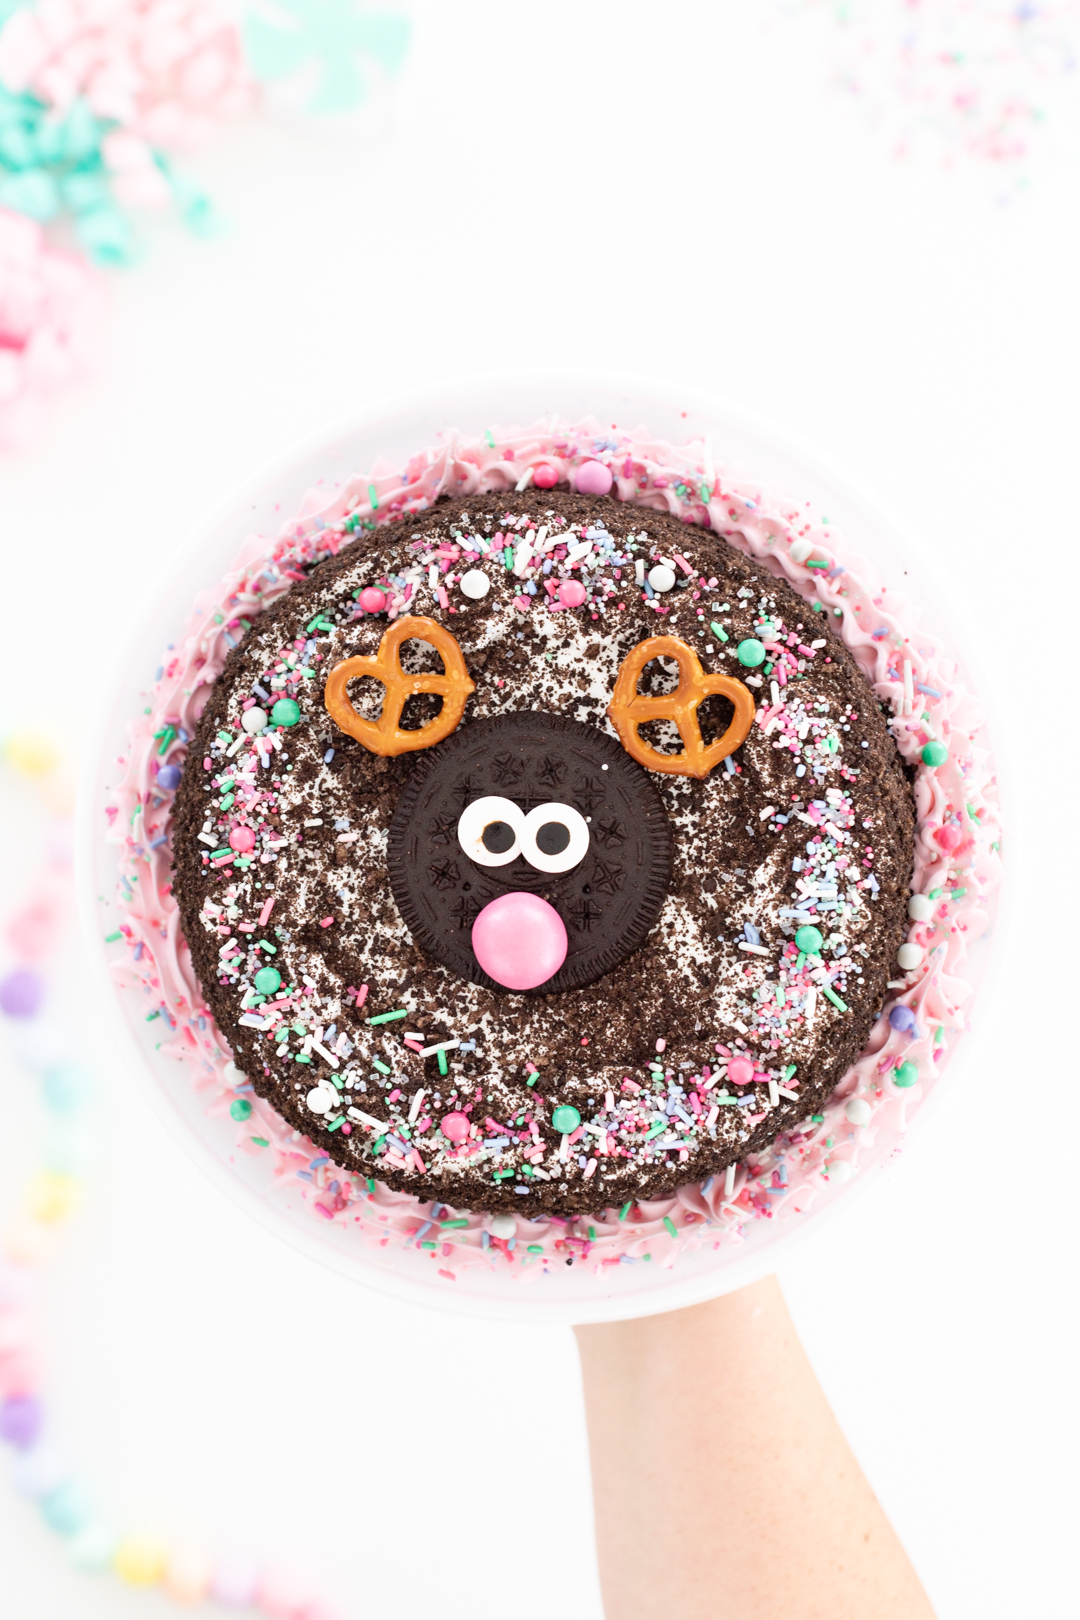 adorable ice cream cake with a reindeer in the center. pink gum ball nose